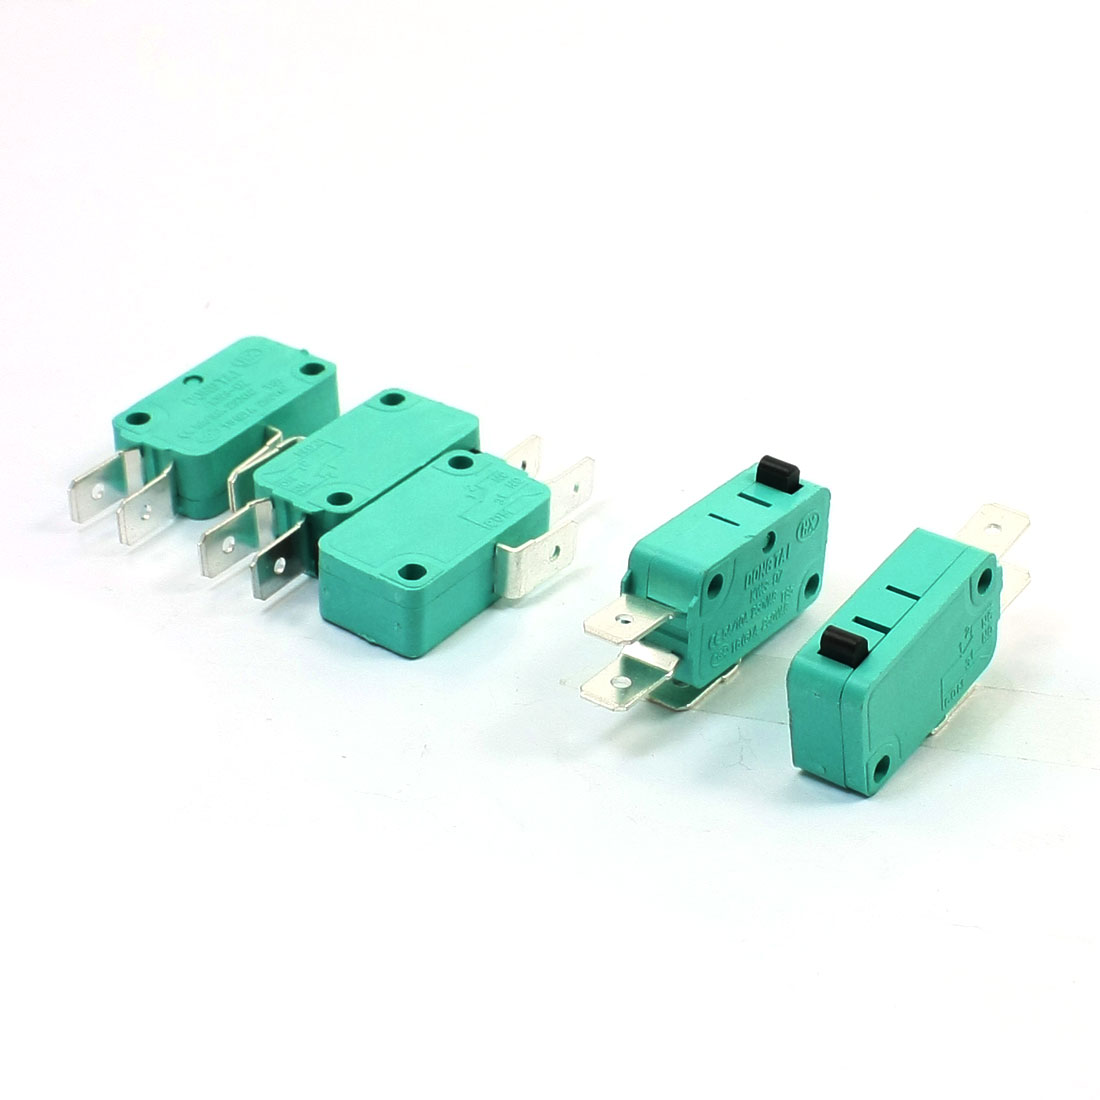 KW3-OZ 16A 250VAC SPDT NO NC Basic Snap Action Micro Switch Green 5 Pcs